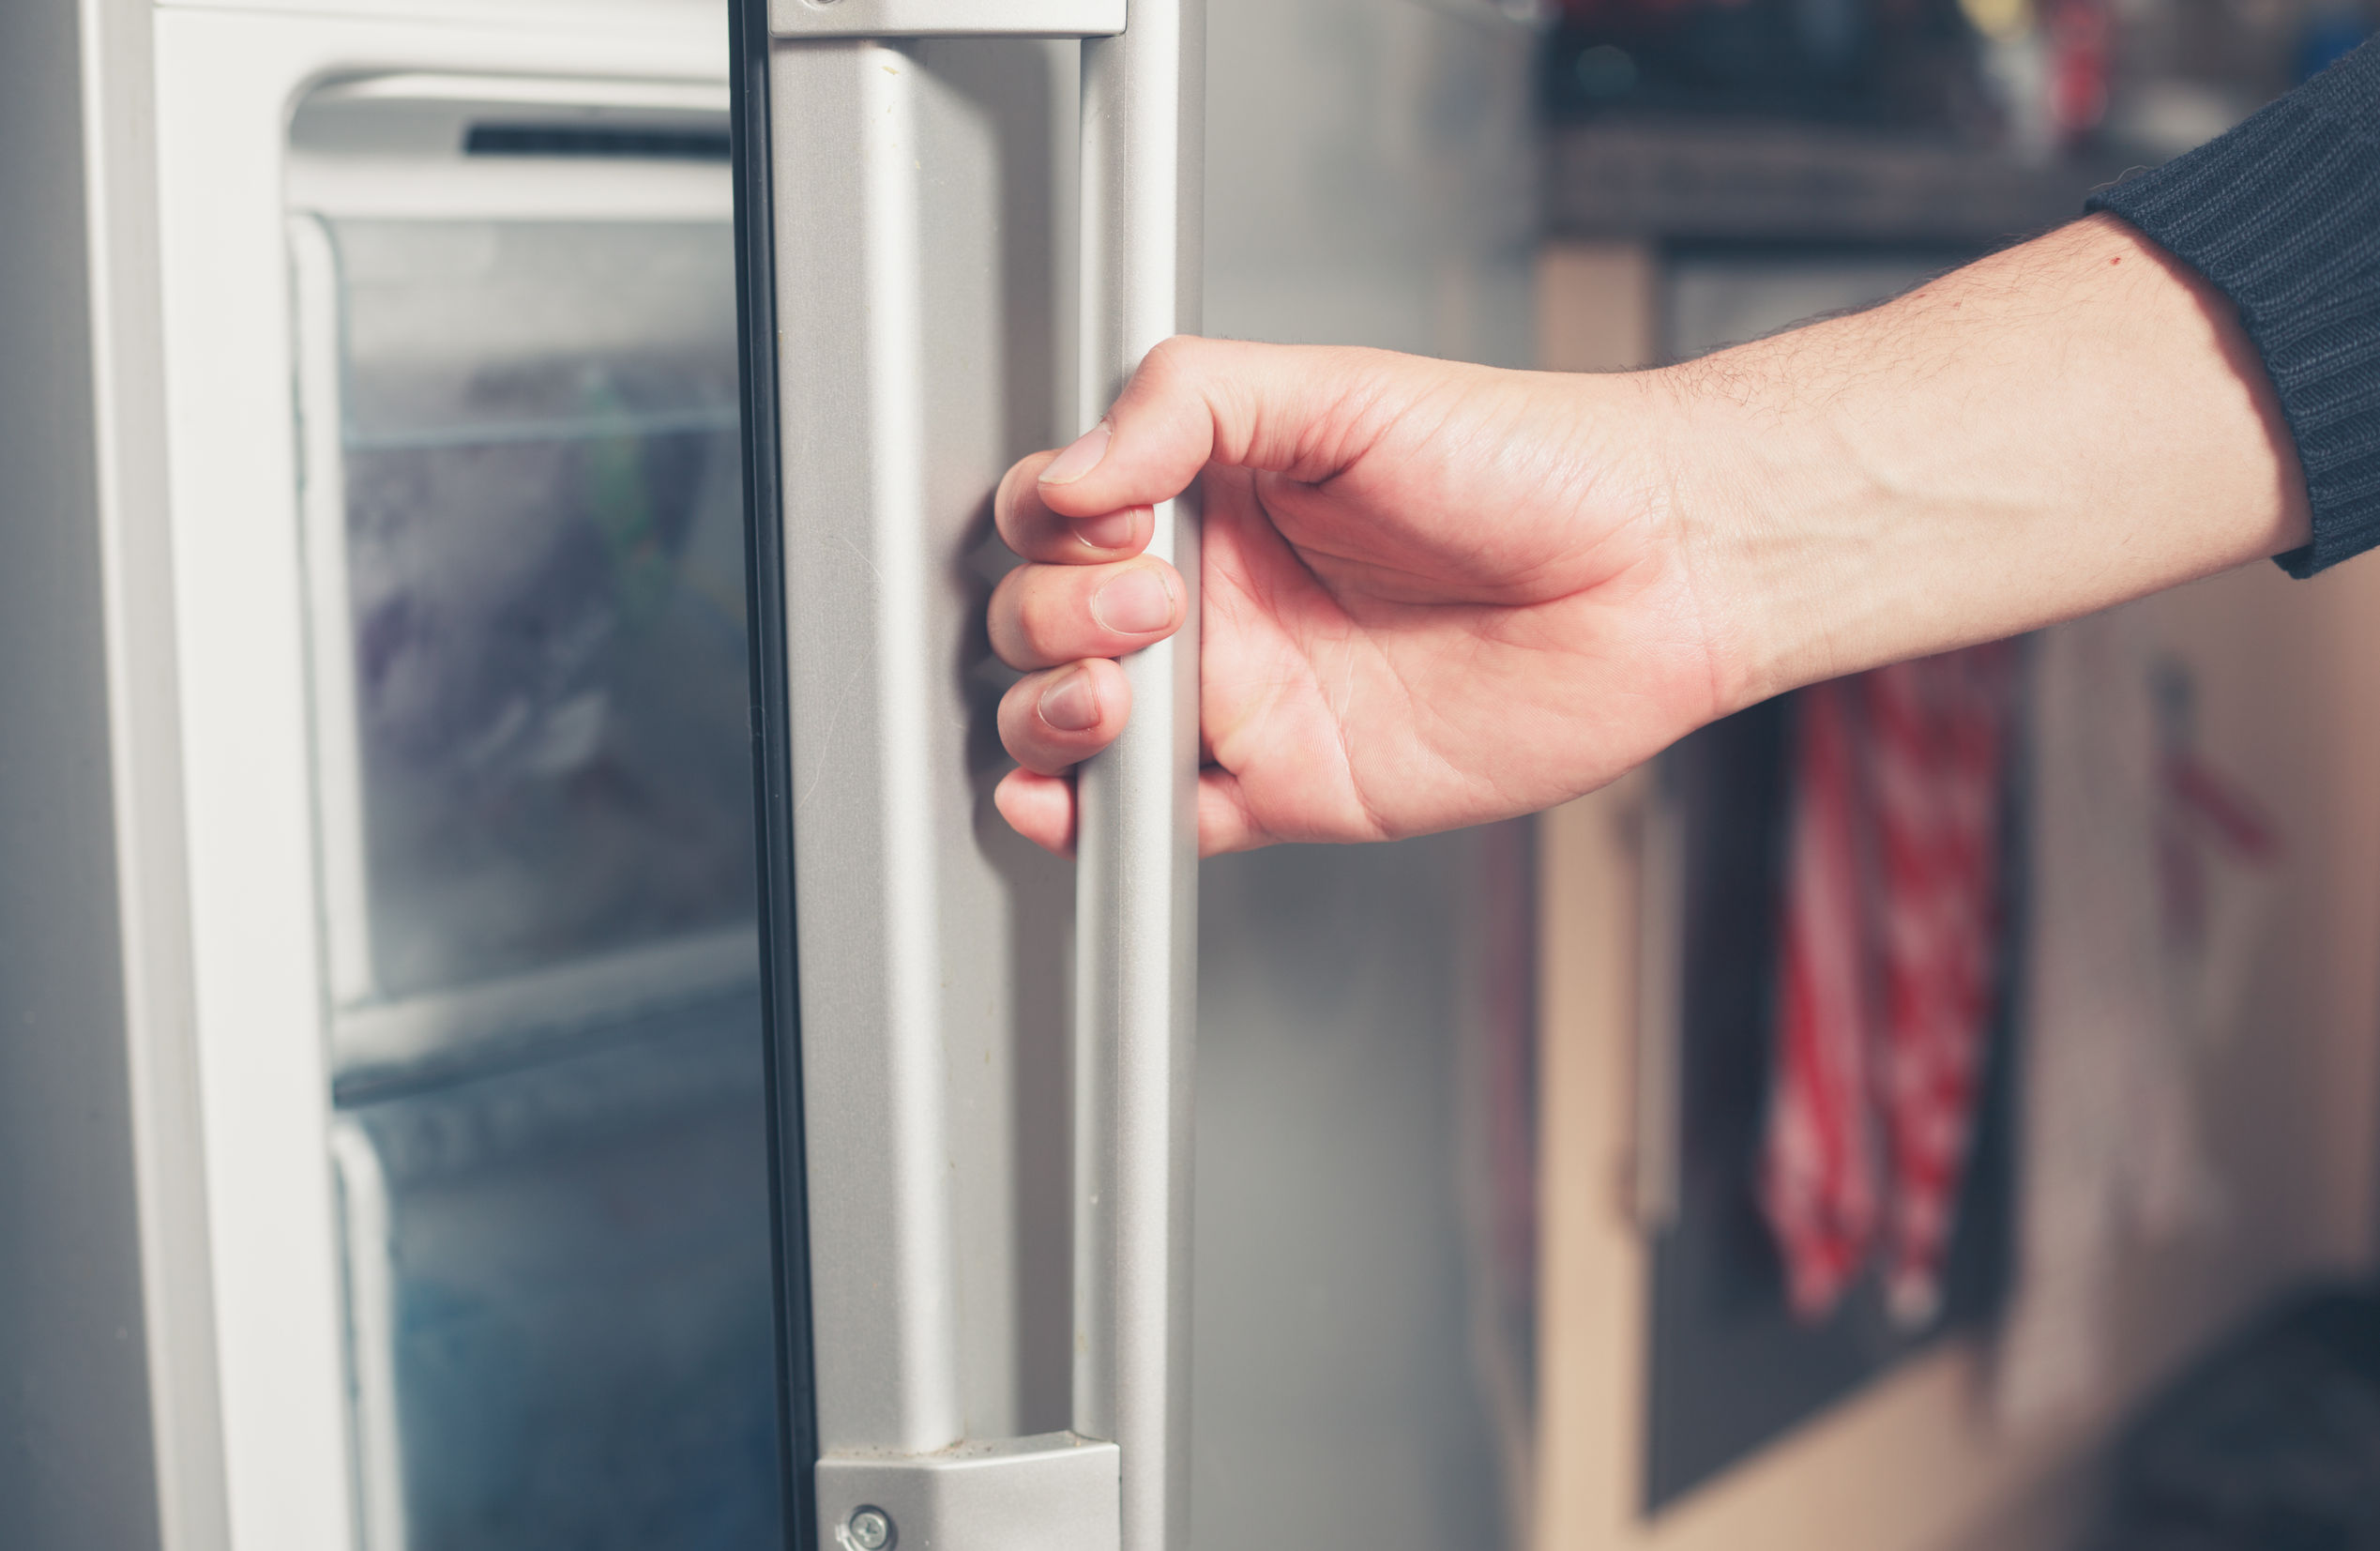 Best Upright Freezer 2020: The ultimate guide